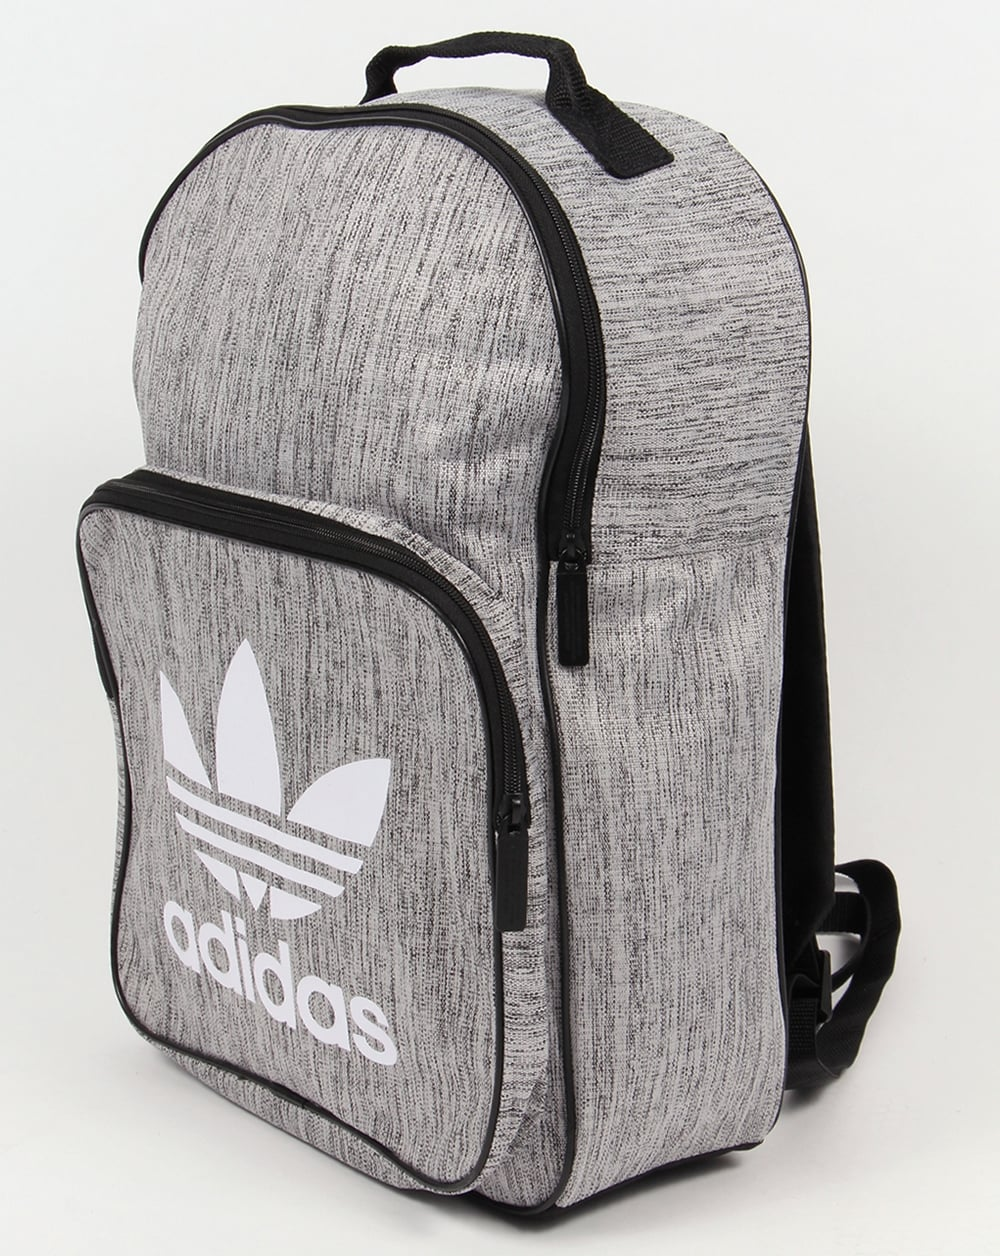 922293227a Adidas Plain Black Backpack- Fenix Toulouse Handball